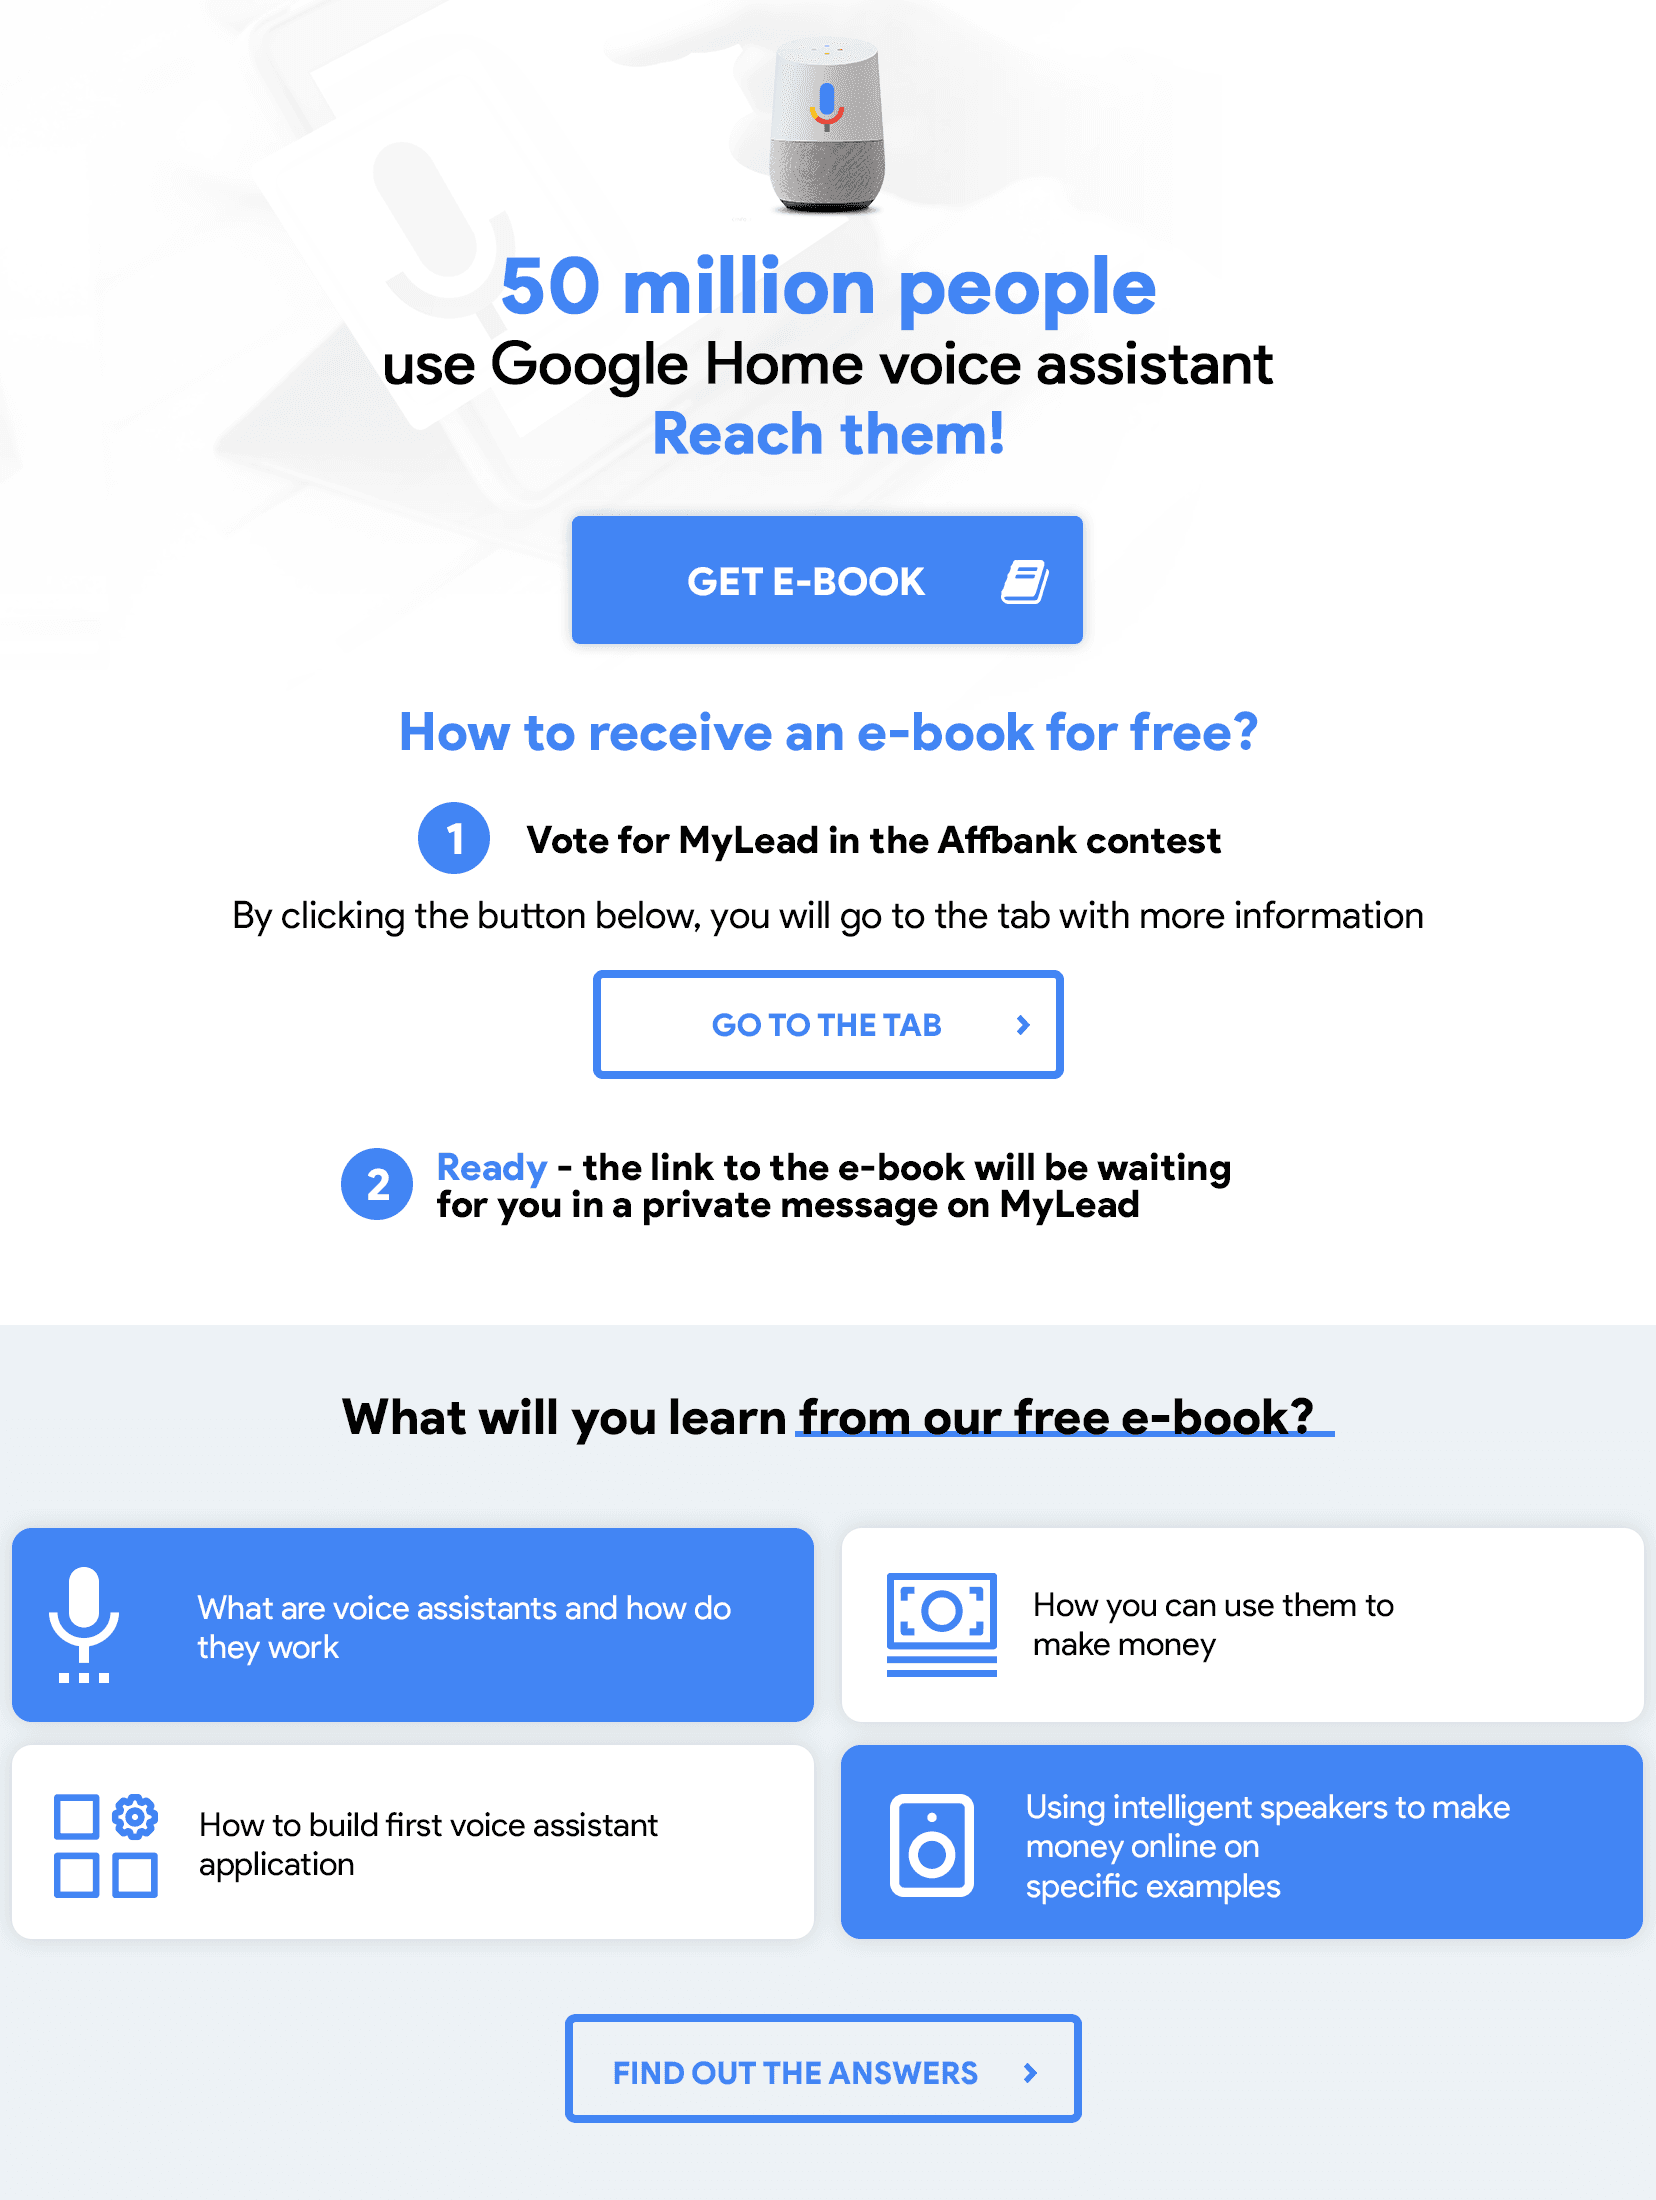 E-book - how to use voice assistants in affiliate marketing